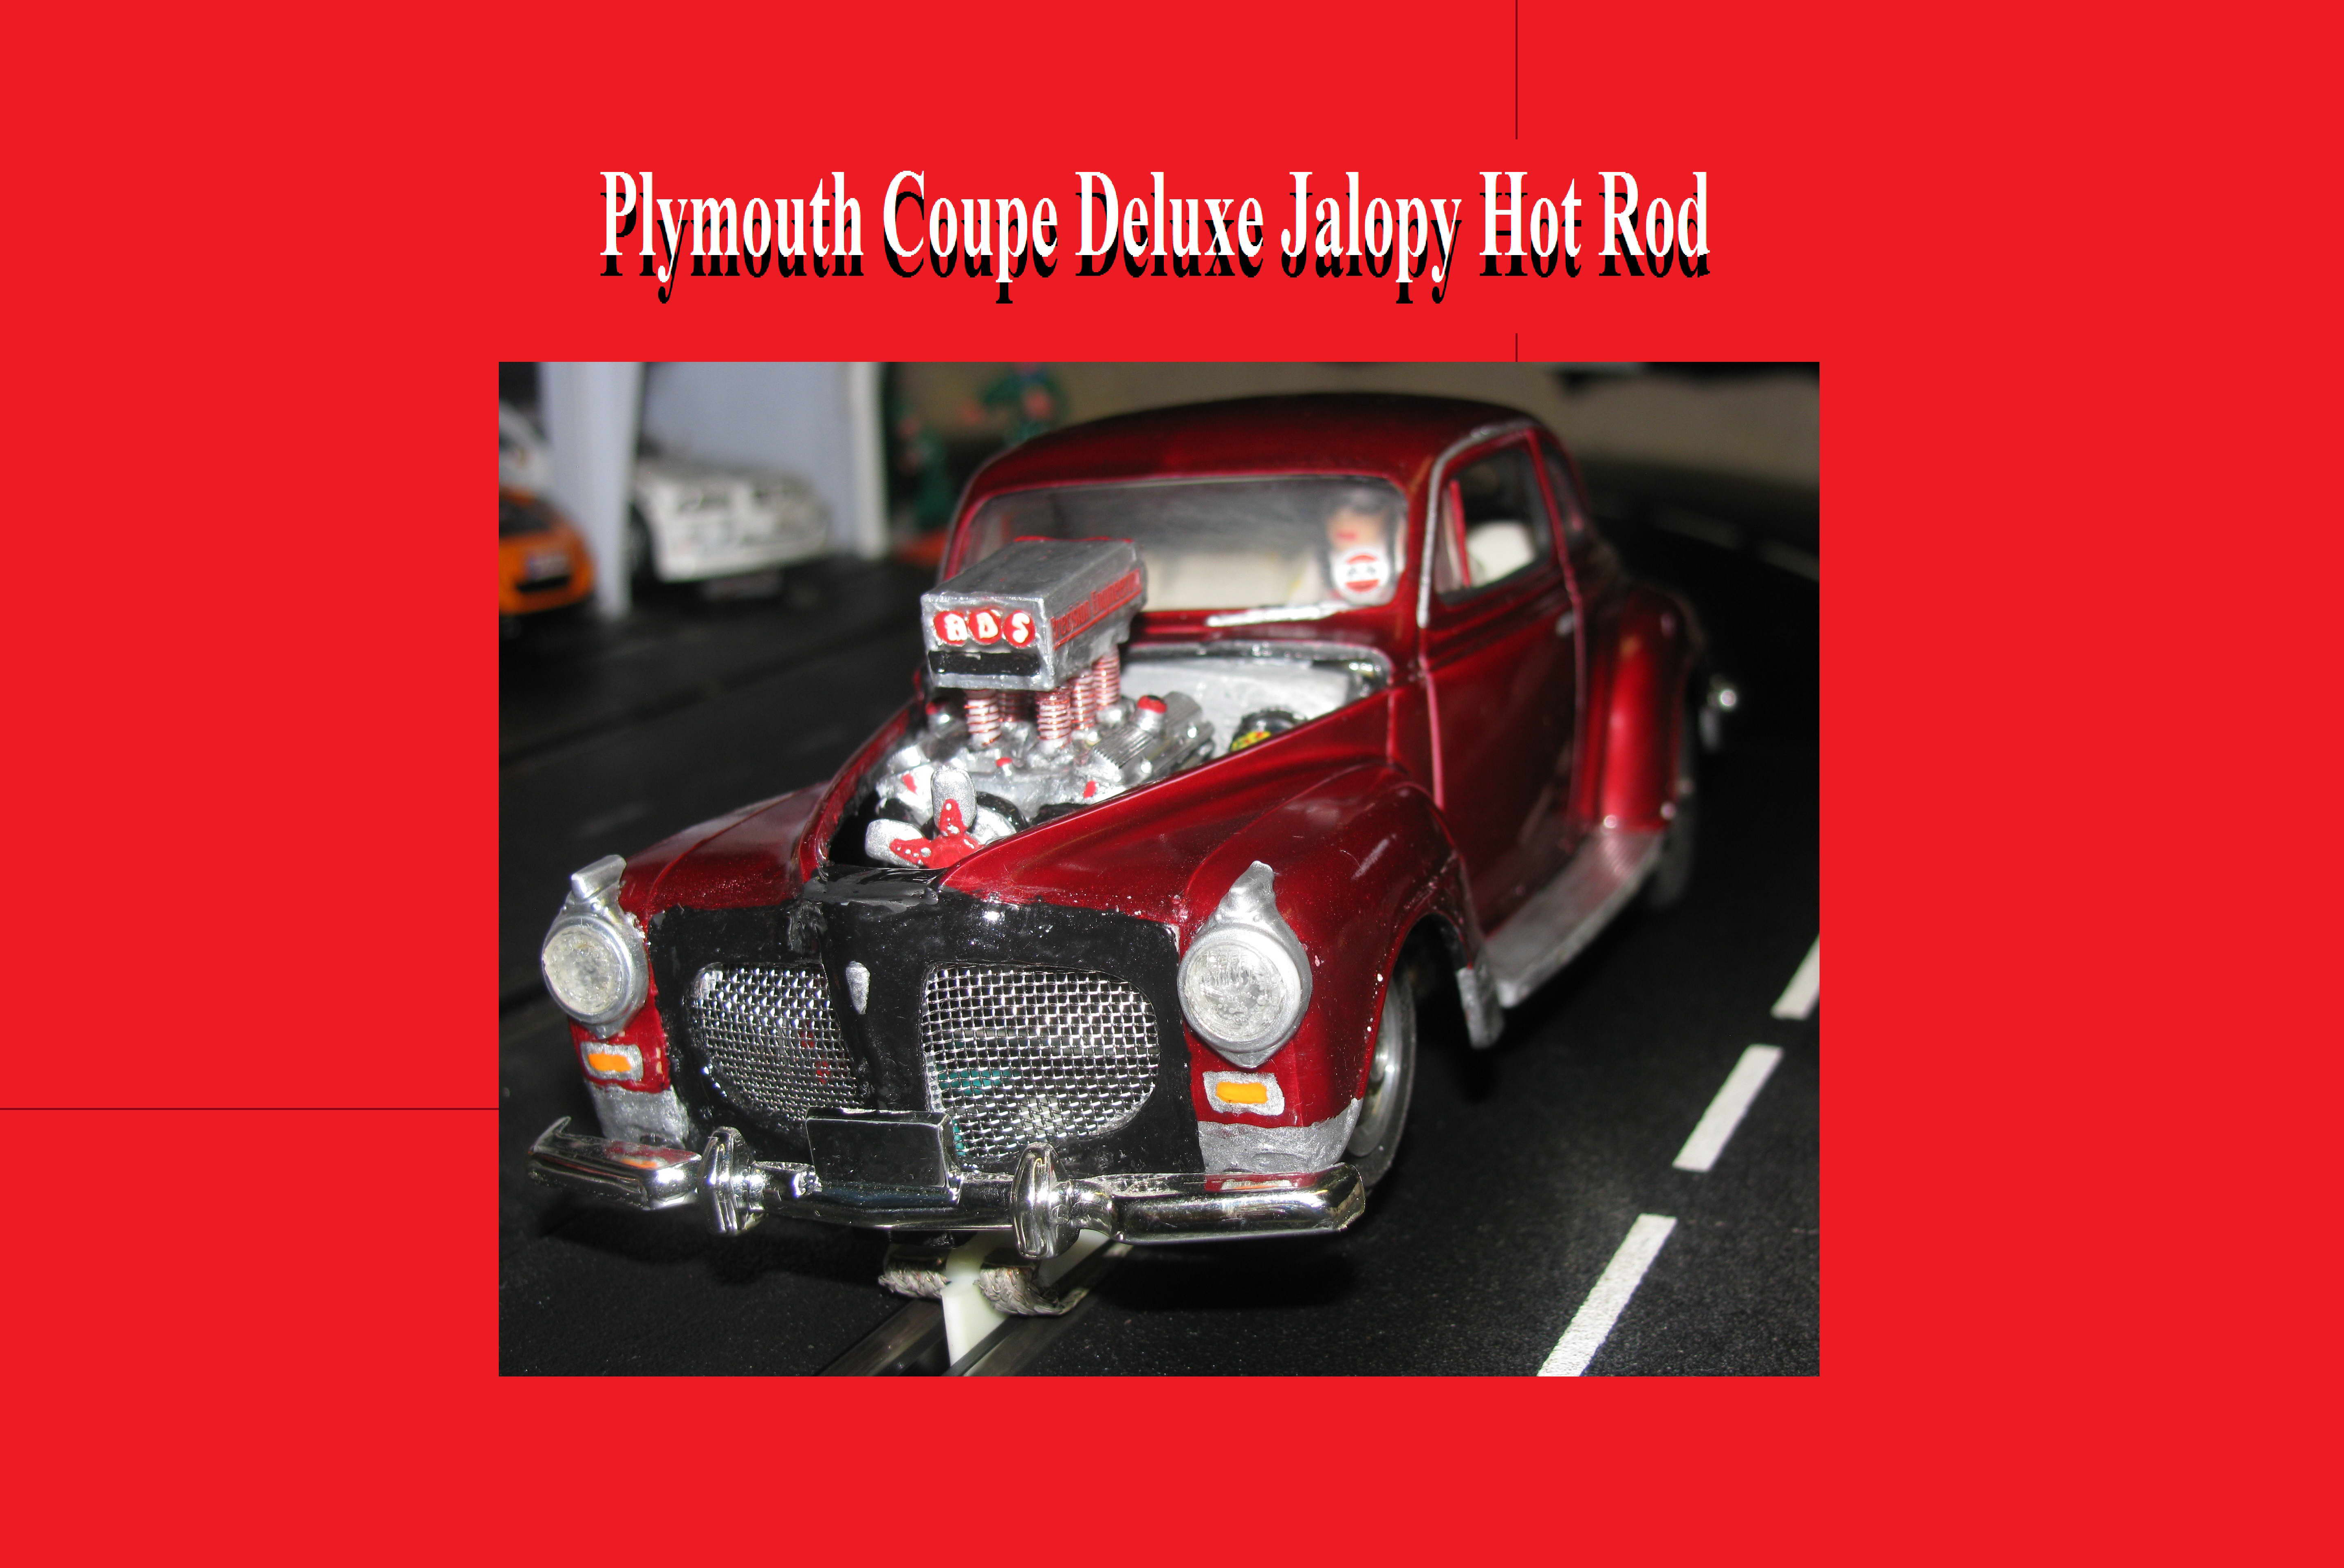 * Winter is coming SALE * Vintage 1940 Plymouth Coupe Deluxe Jalopy Hot Rod Slot Car 1:24 Scale